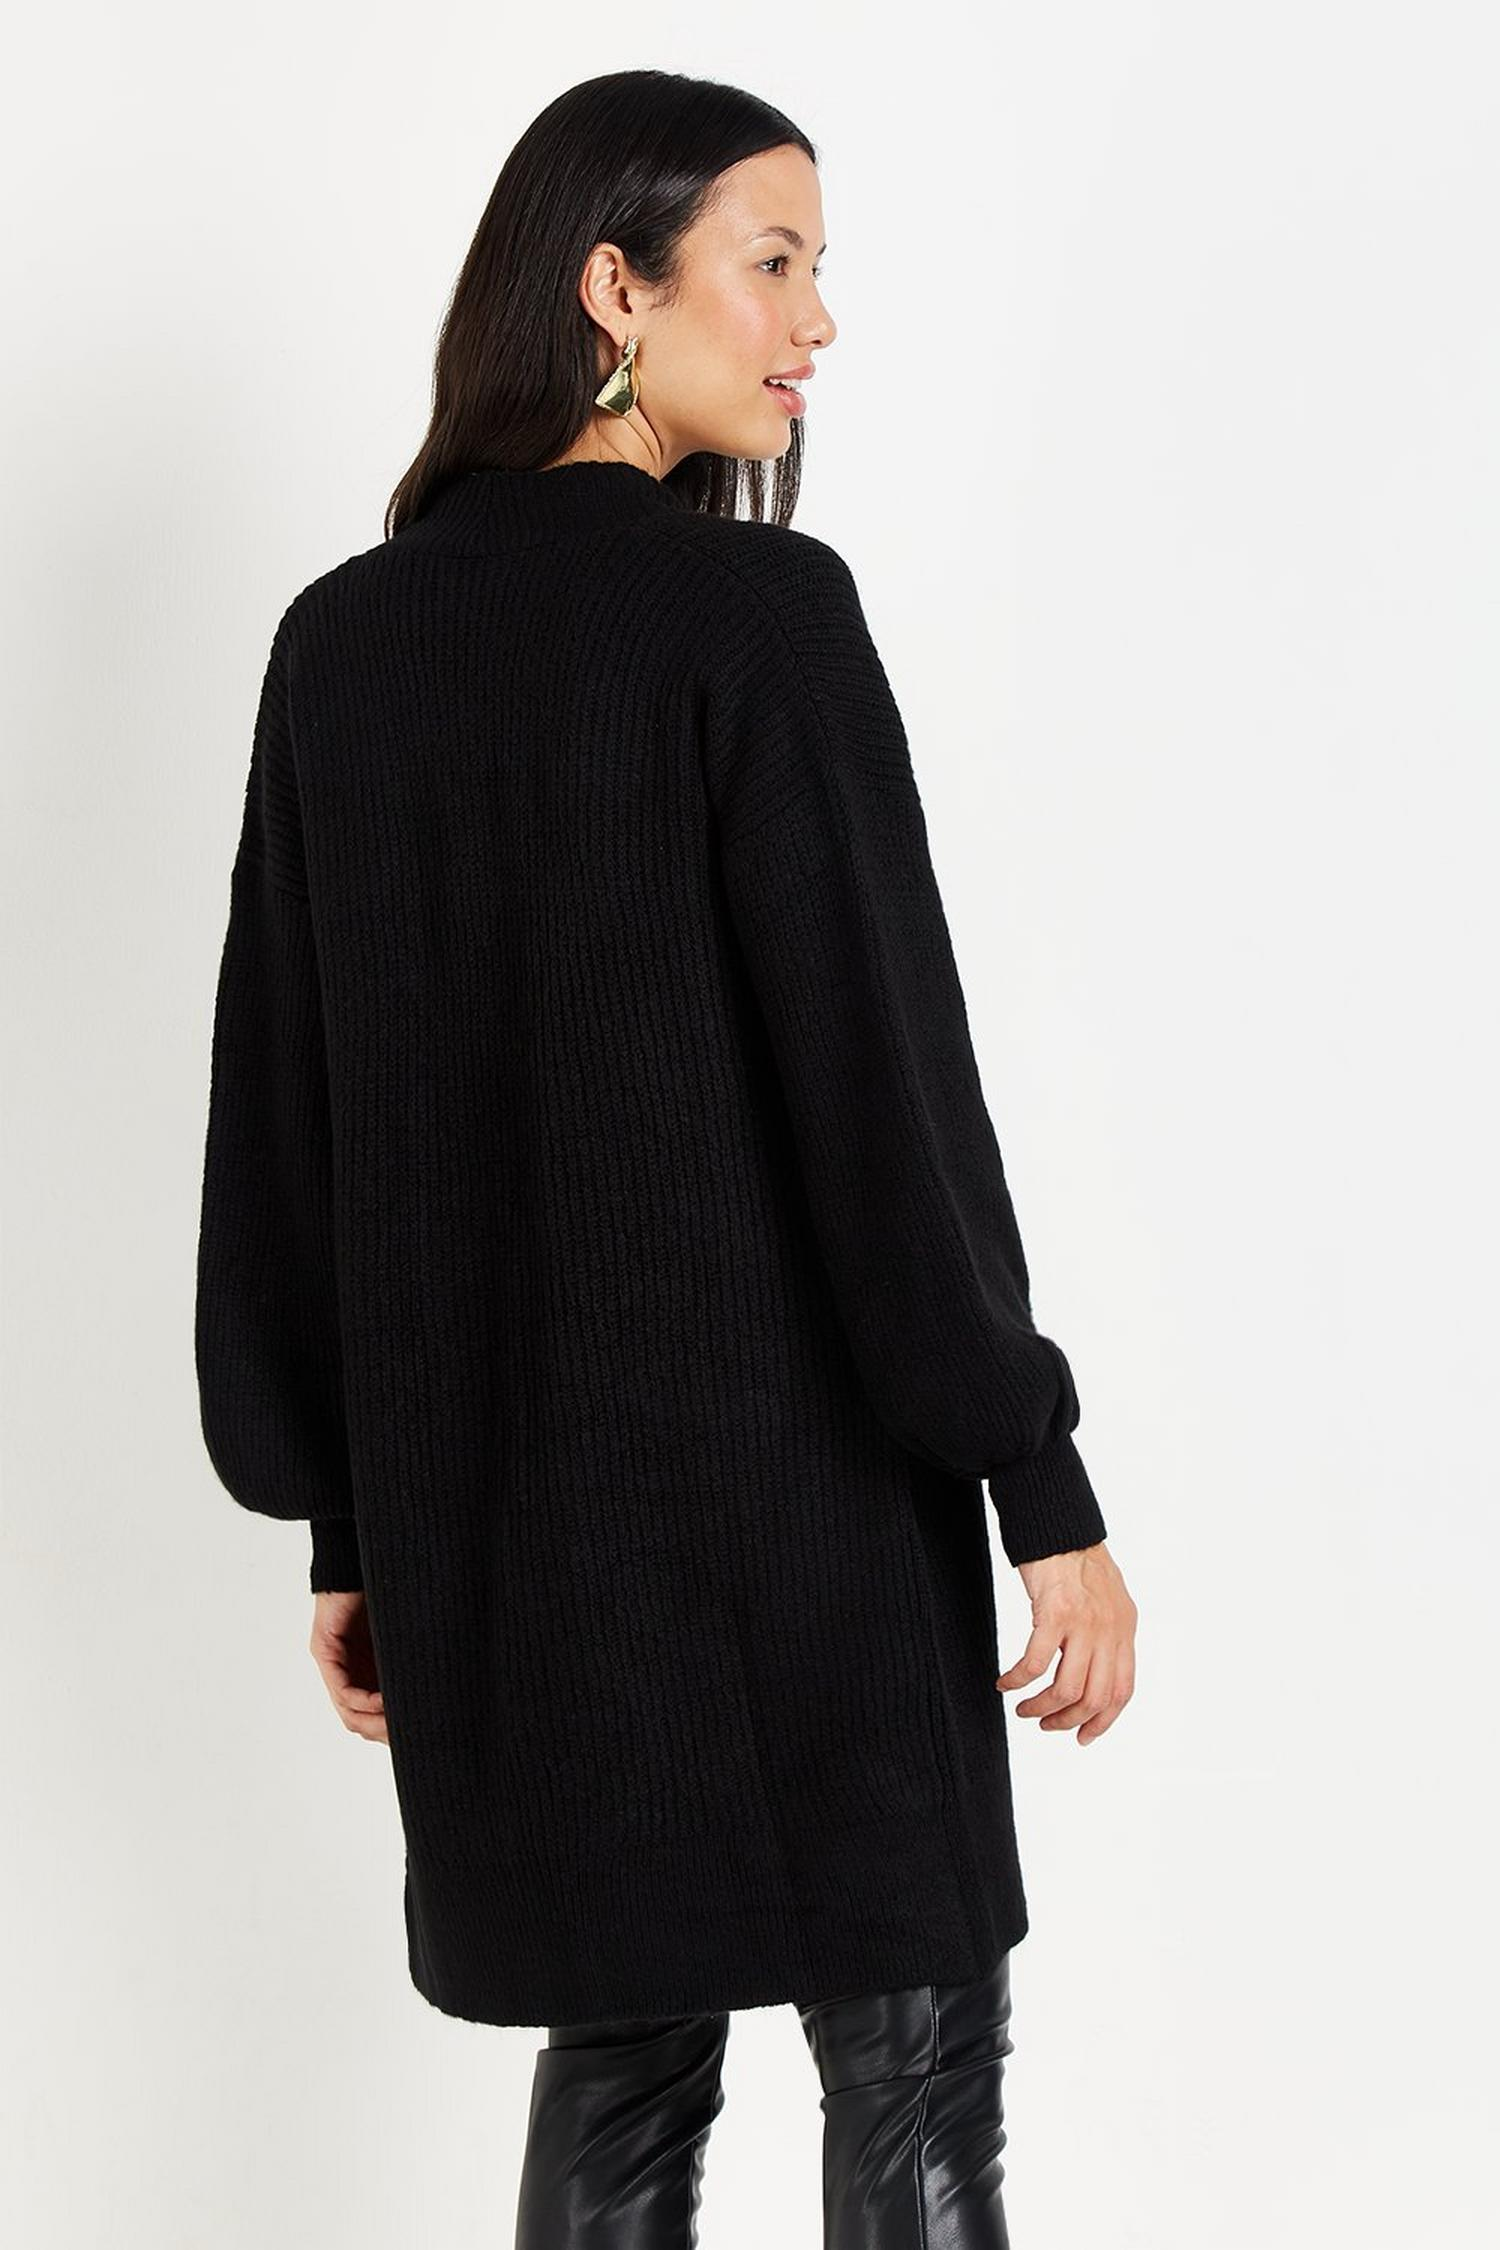 105 TALL Black Knitted Cardigan image number 3